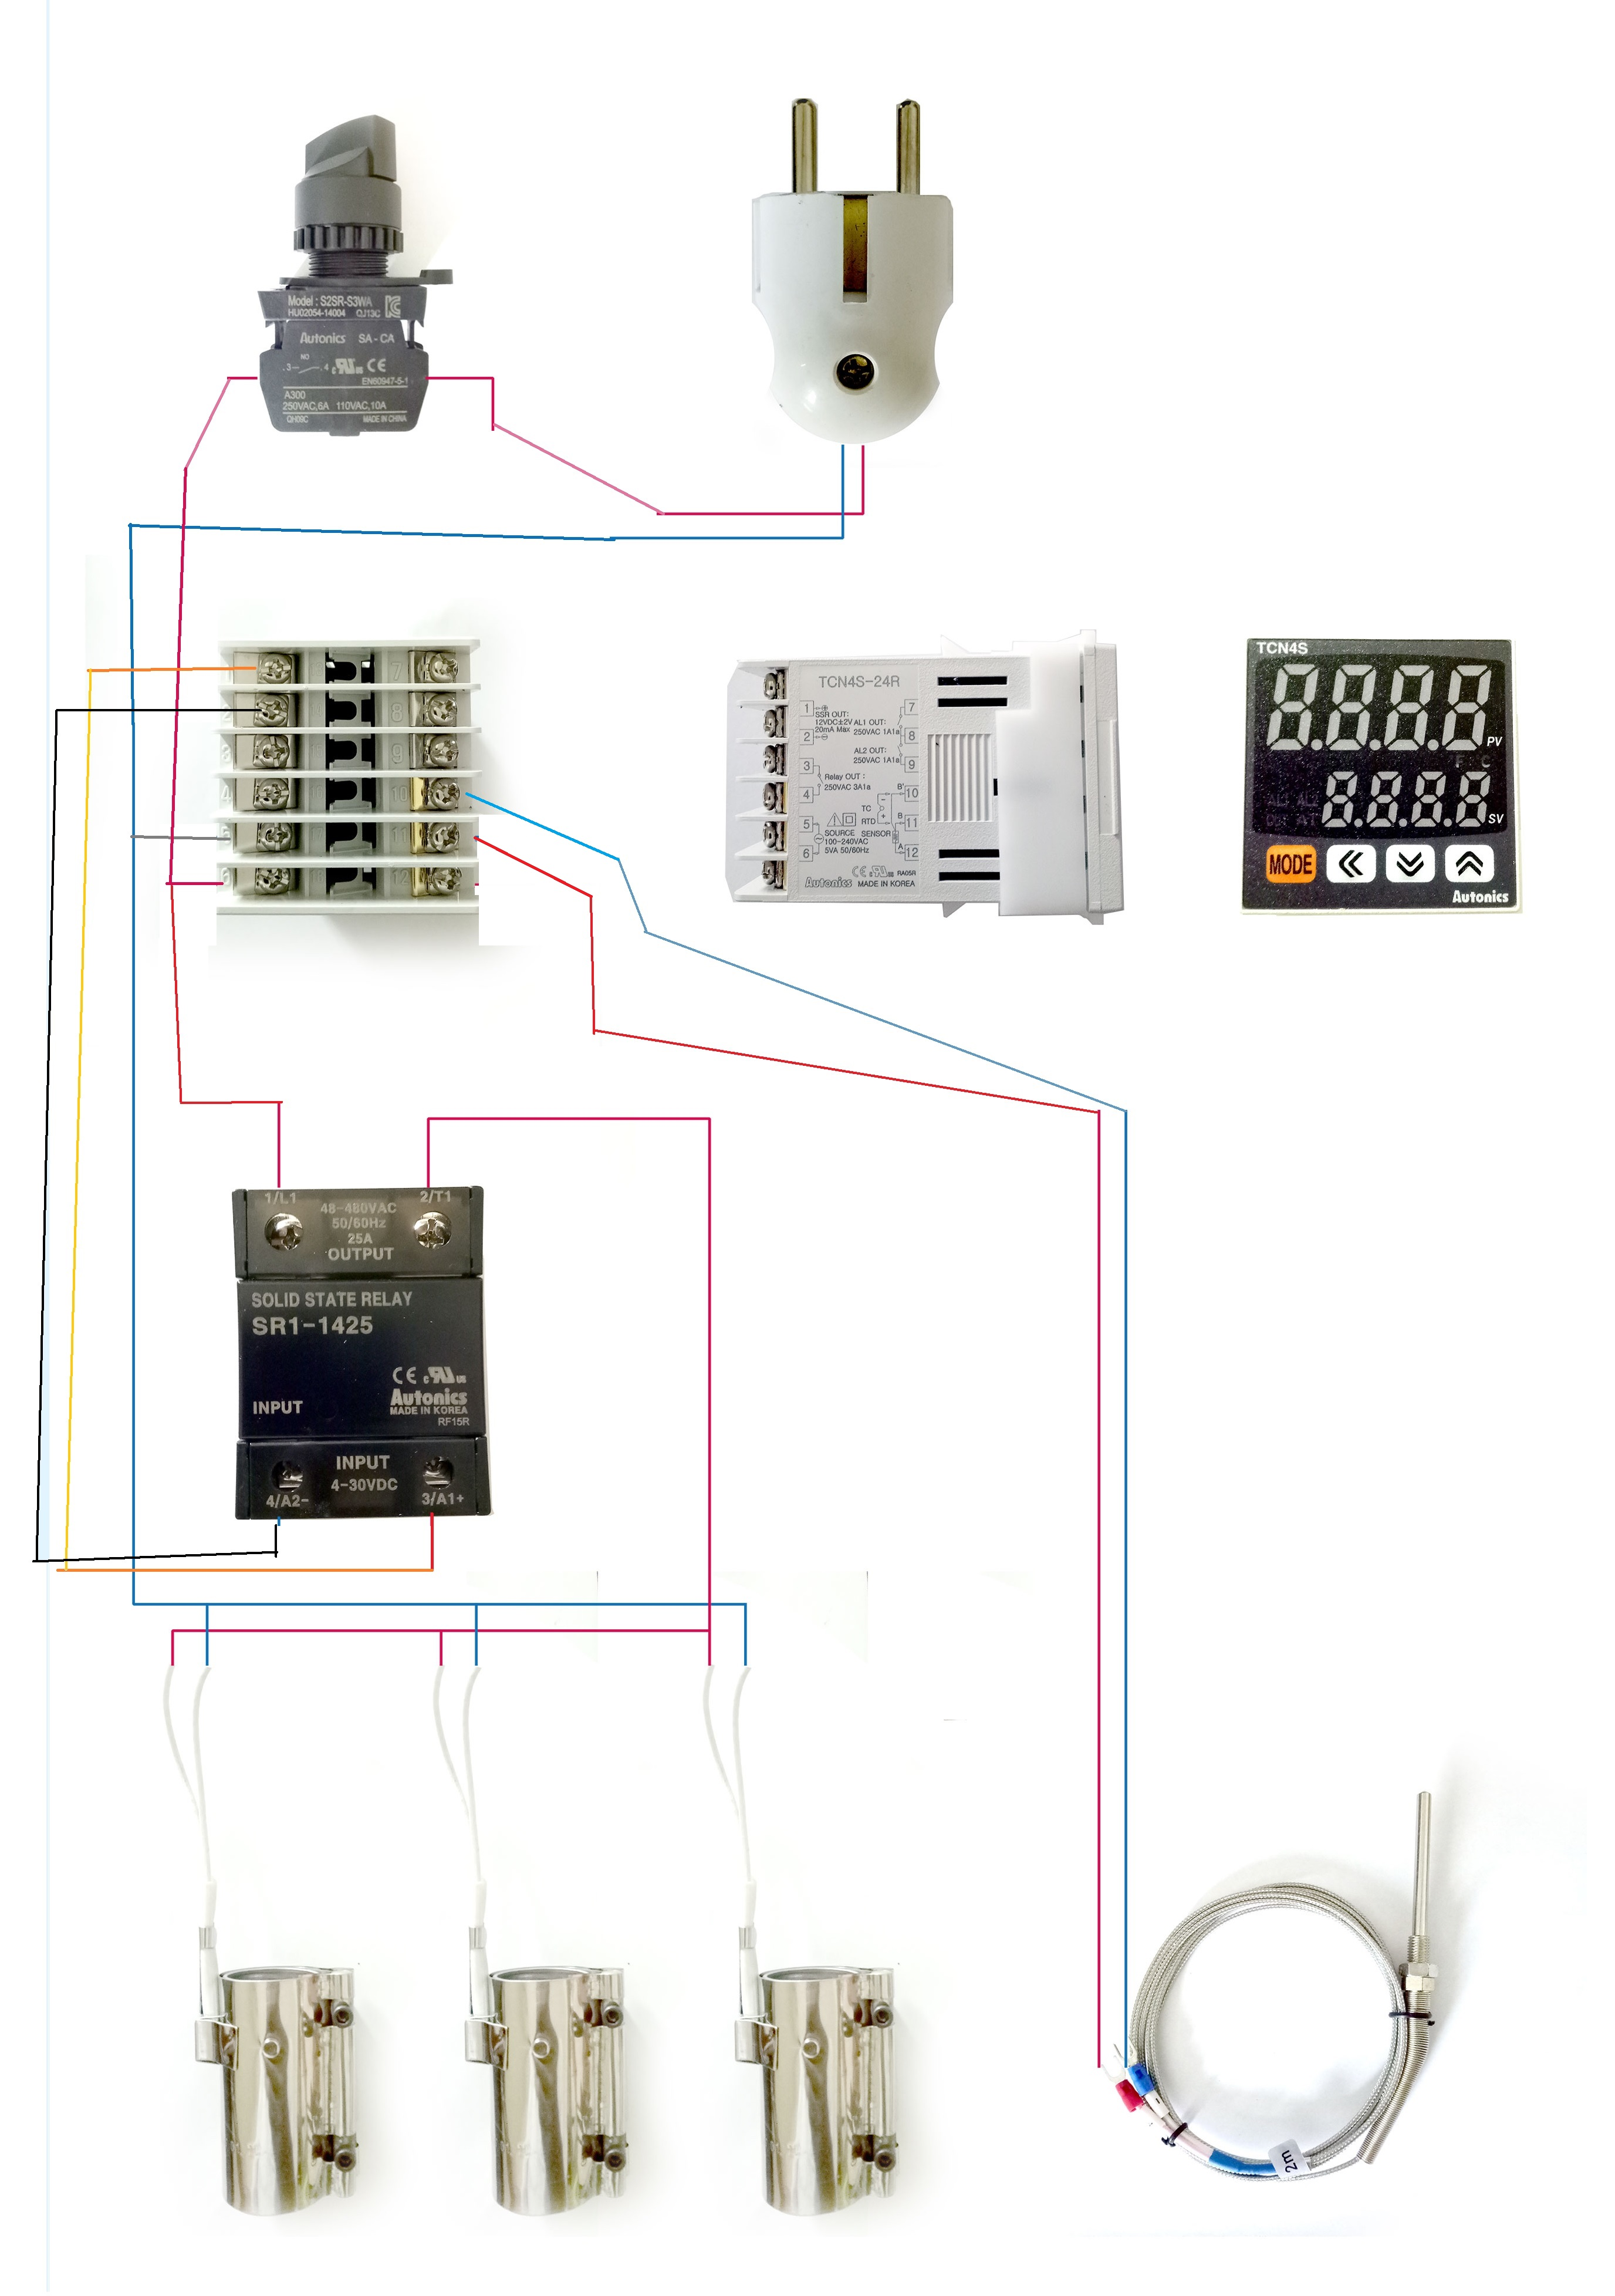 Please Help Injection Wiring Dave Hakkens Electrical In Reply To